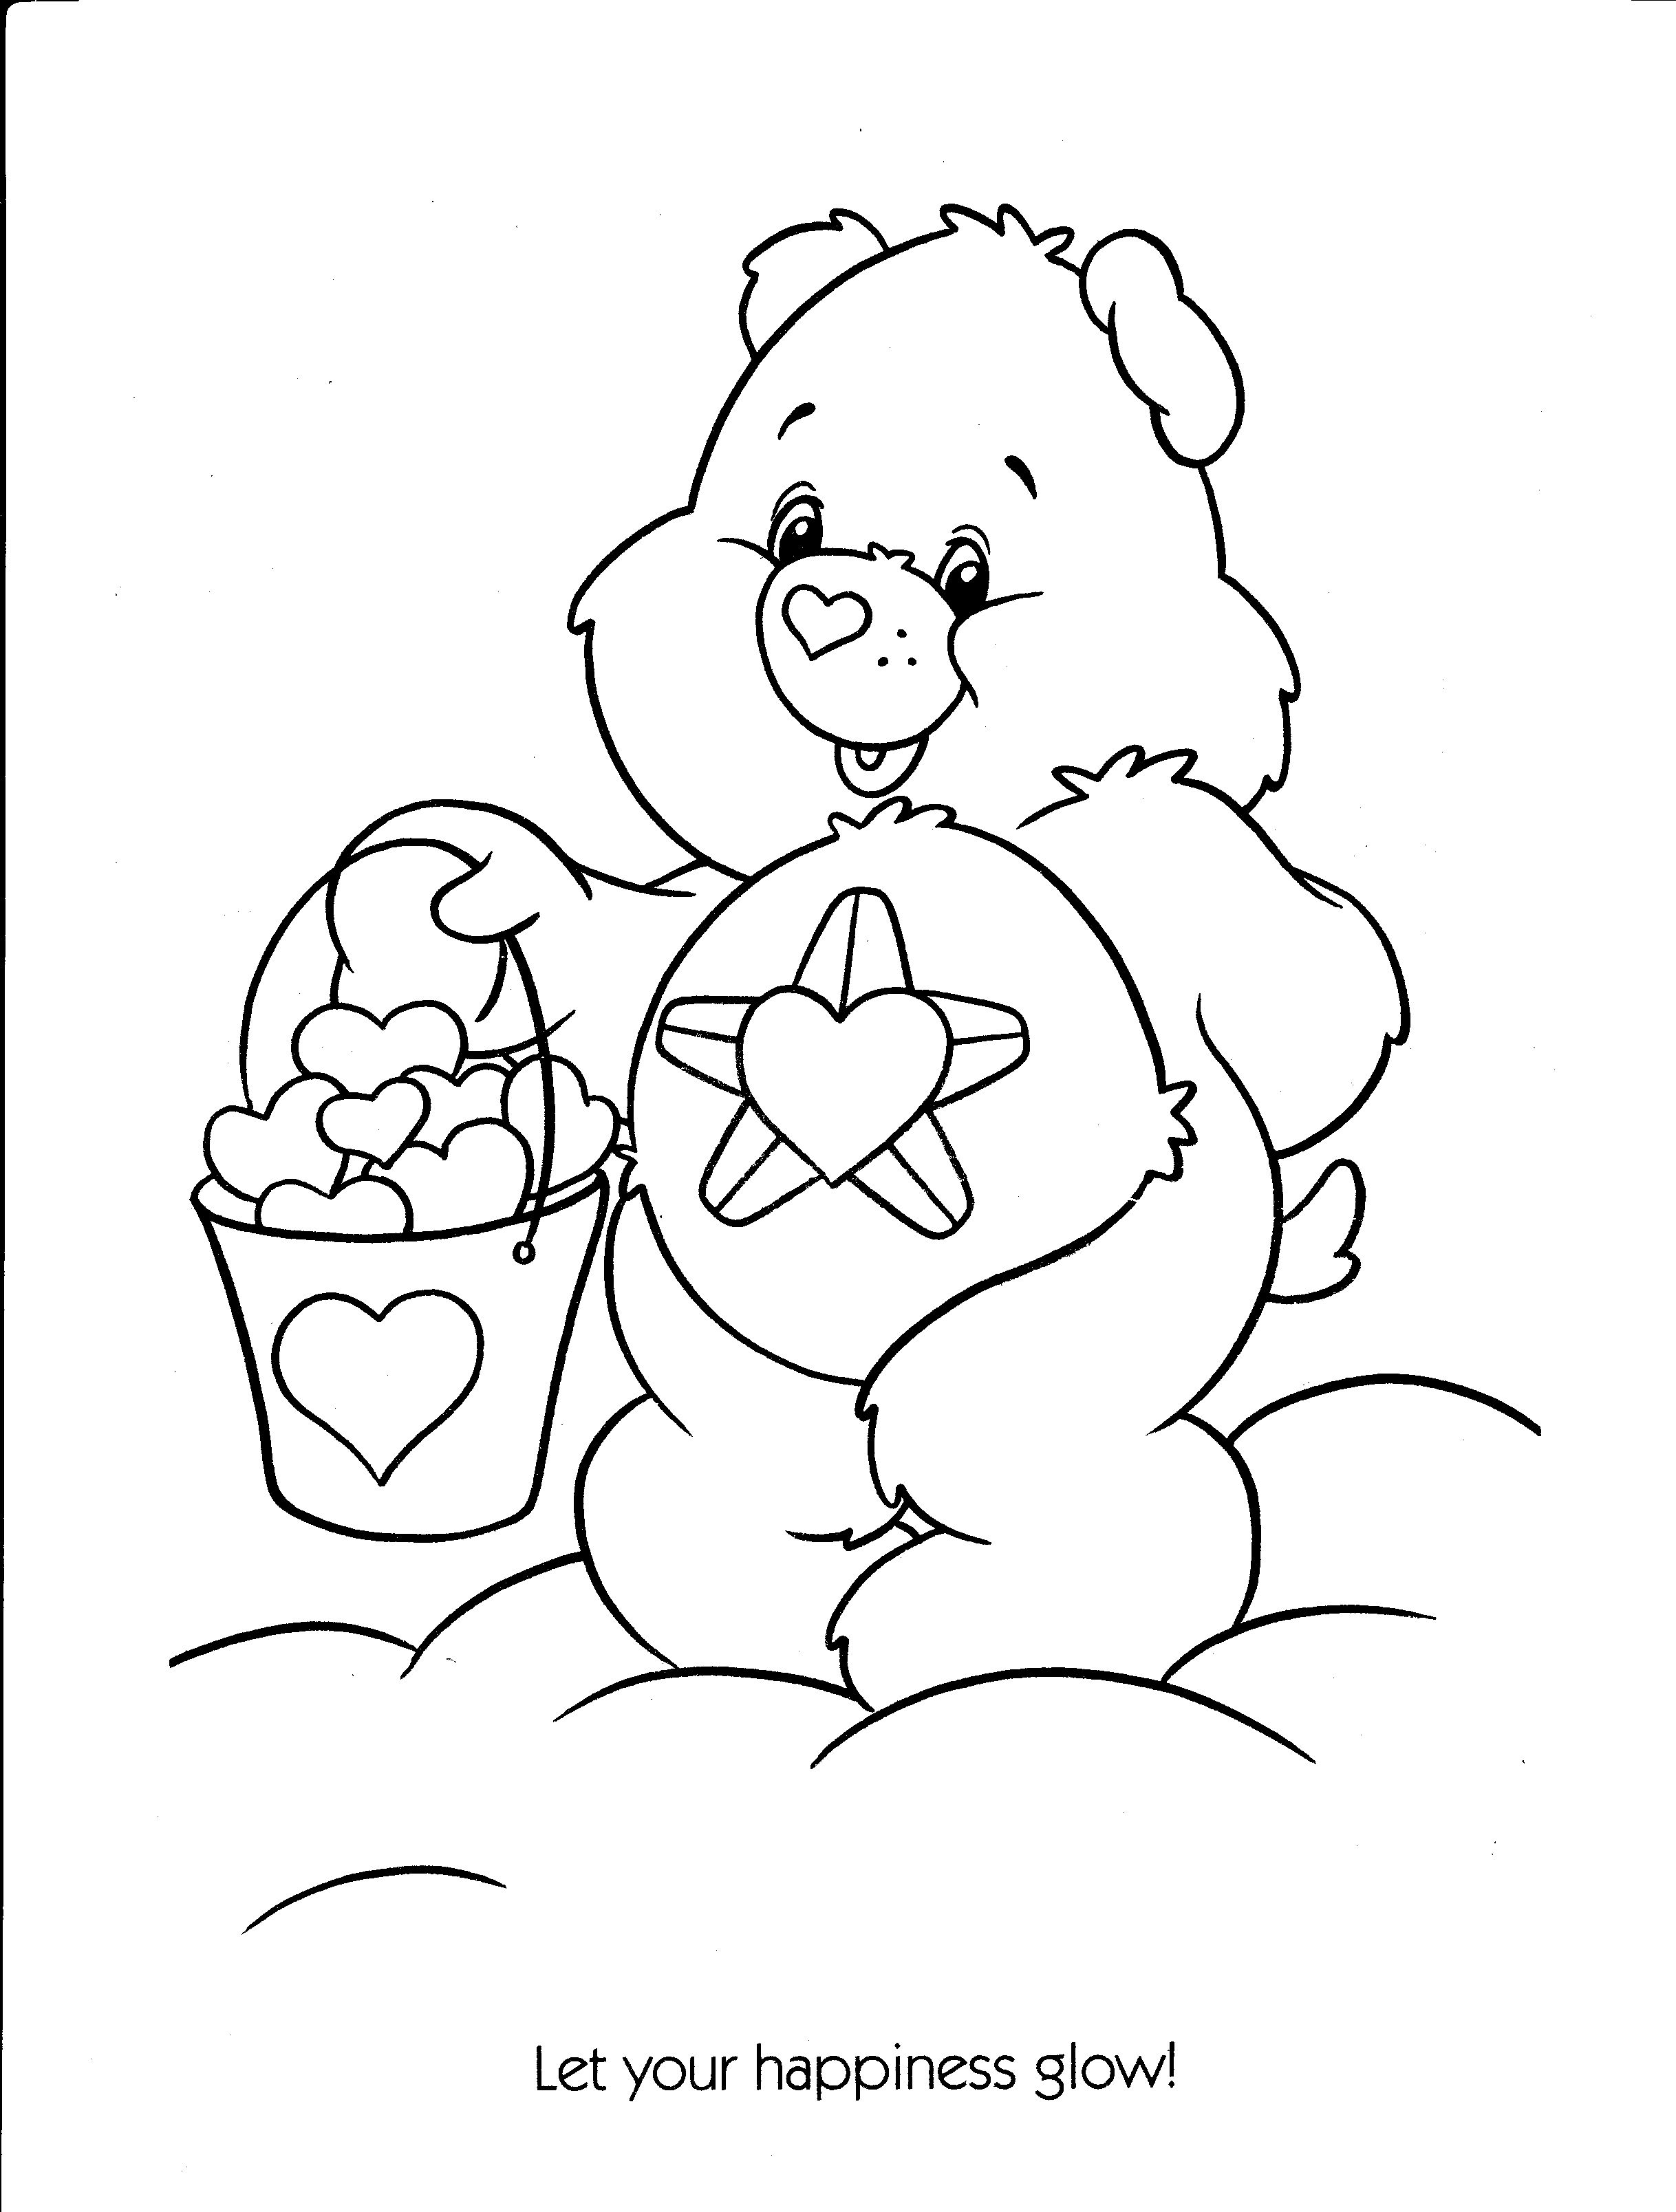 Book care coloring sheet - Care Bear Coloring Page Imageseldiariodelasvocesrobadas